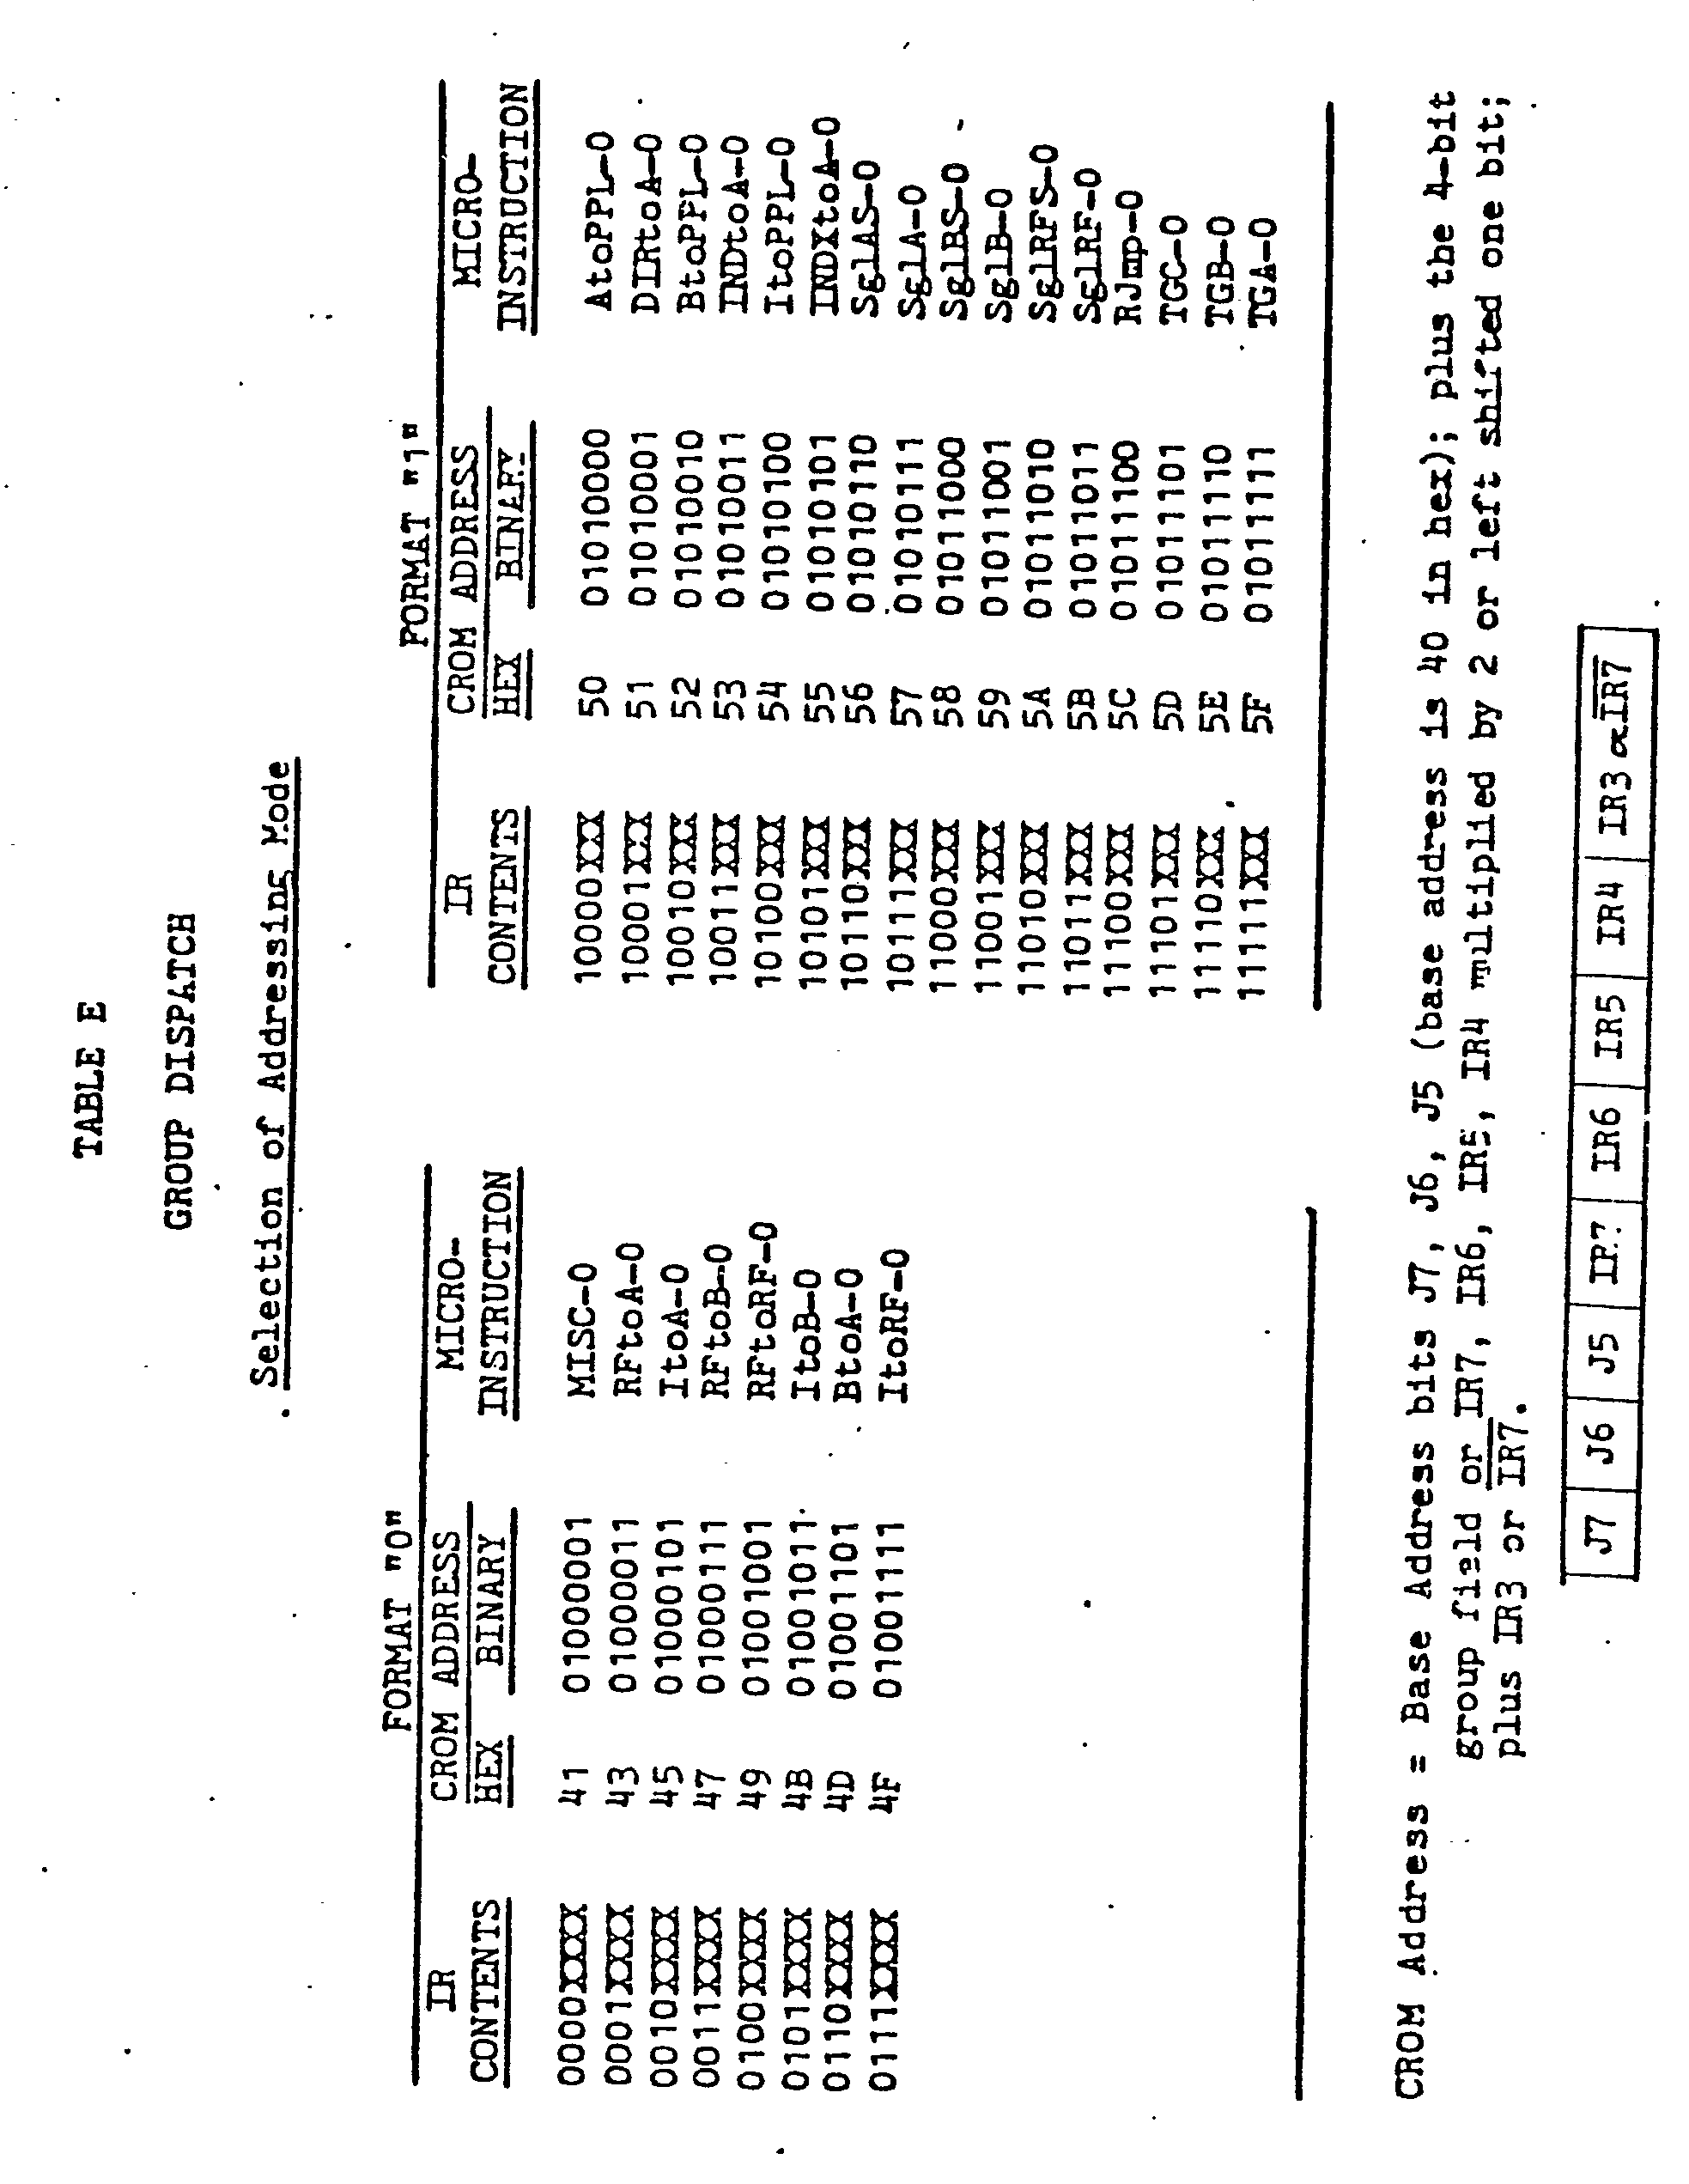 ep0063458a2 - microcomputer system